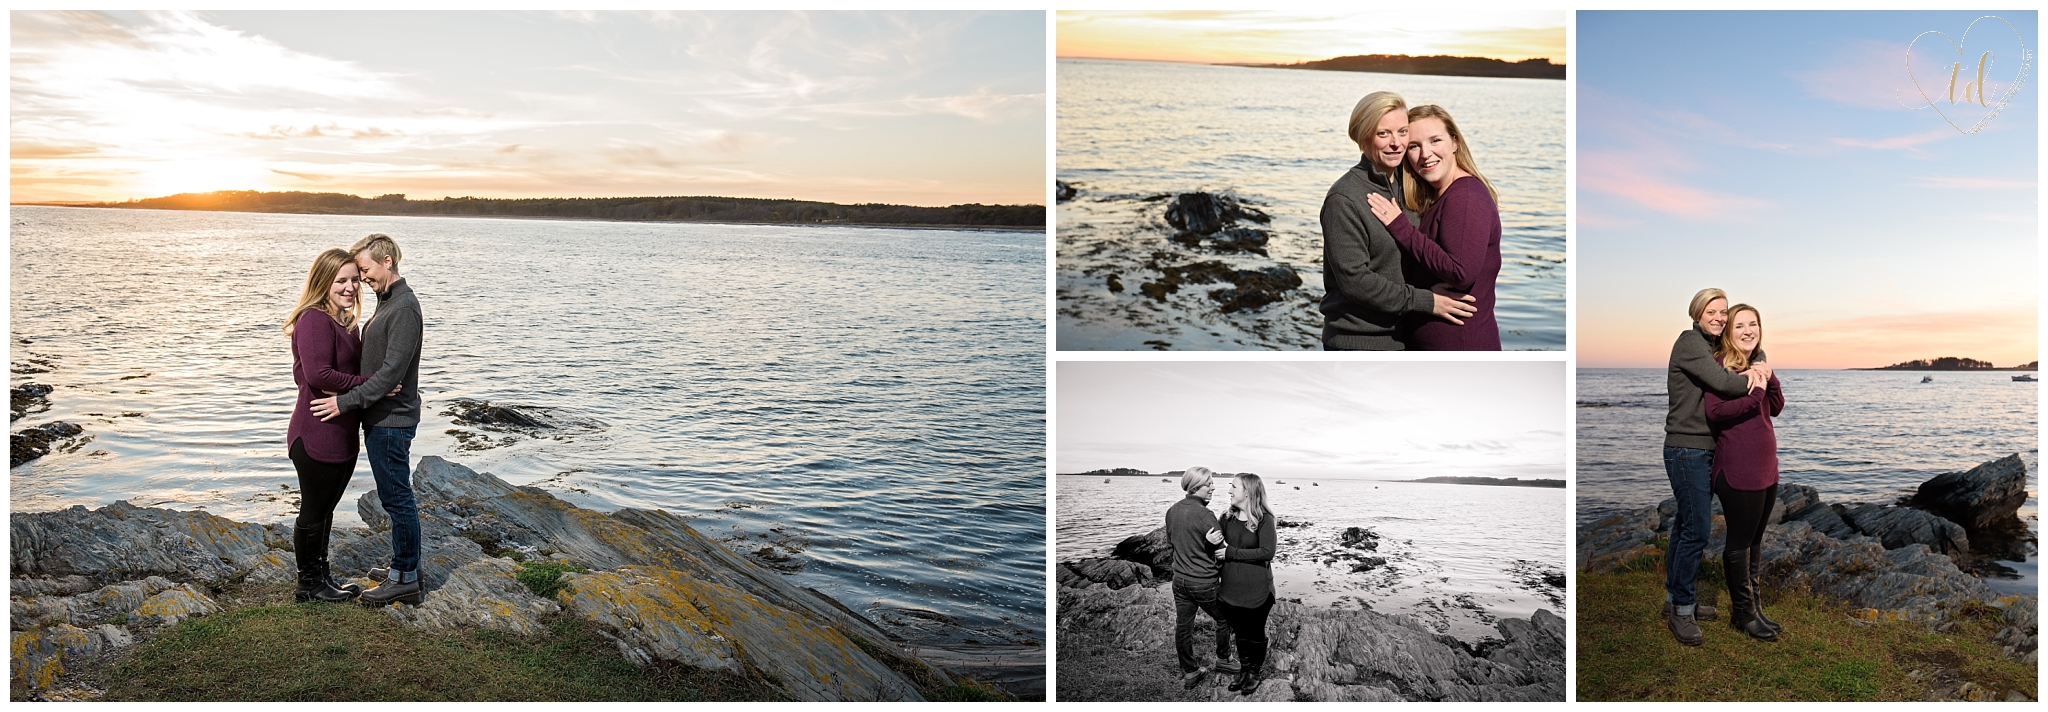 Lesbian Engagement Photography Session in Maine